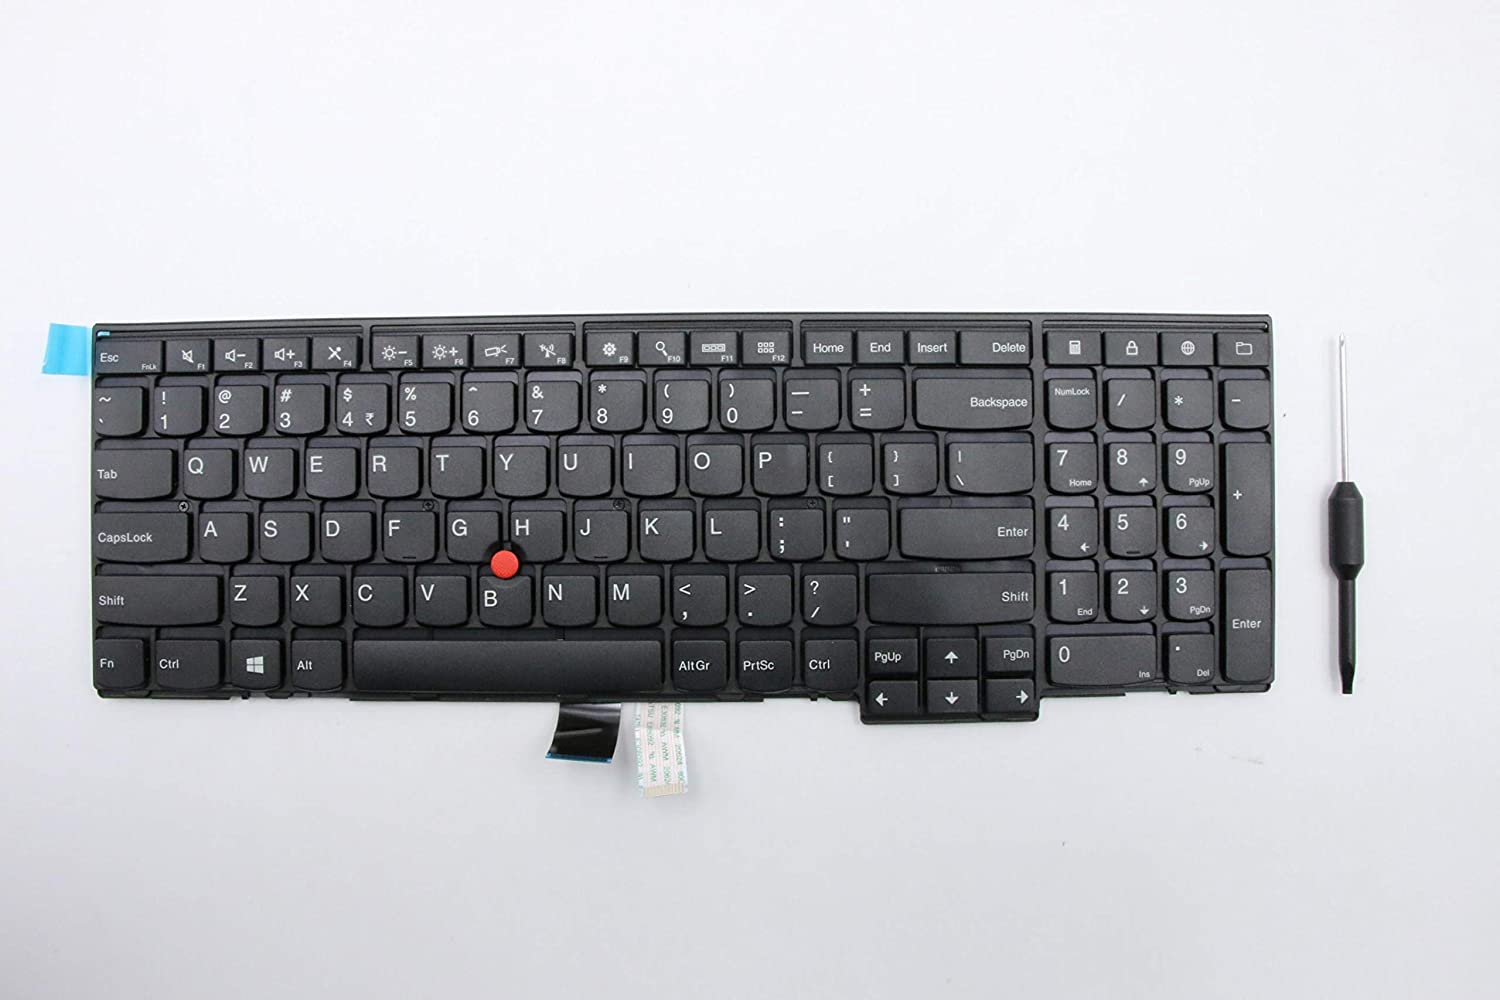 US Original Laptop Non-Backlit Keyboard for Lenovo ThinkPad Compatible E531 T540 T540P T550 L540 W540 W550S W550 W541